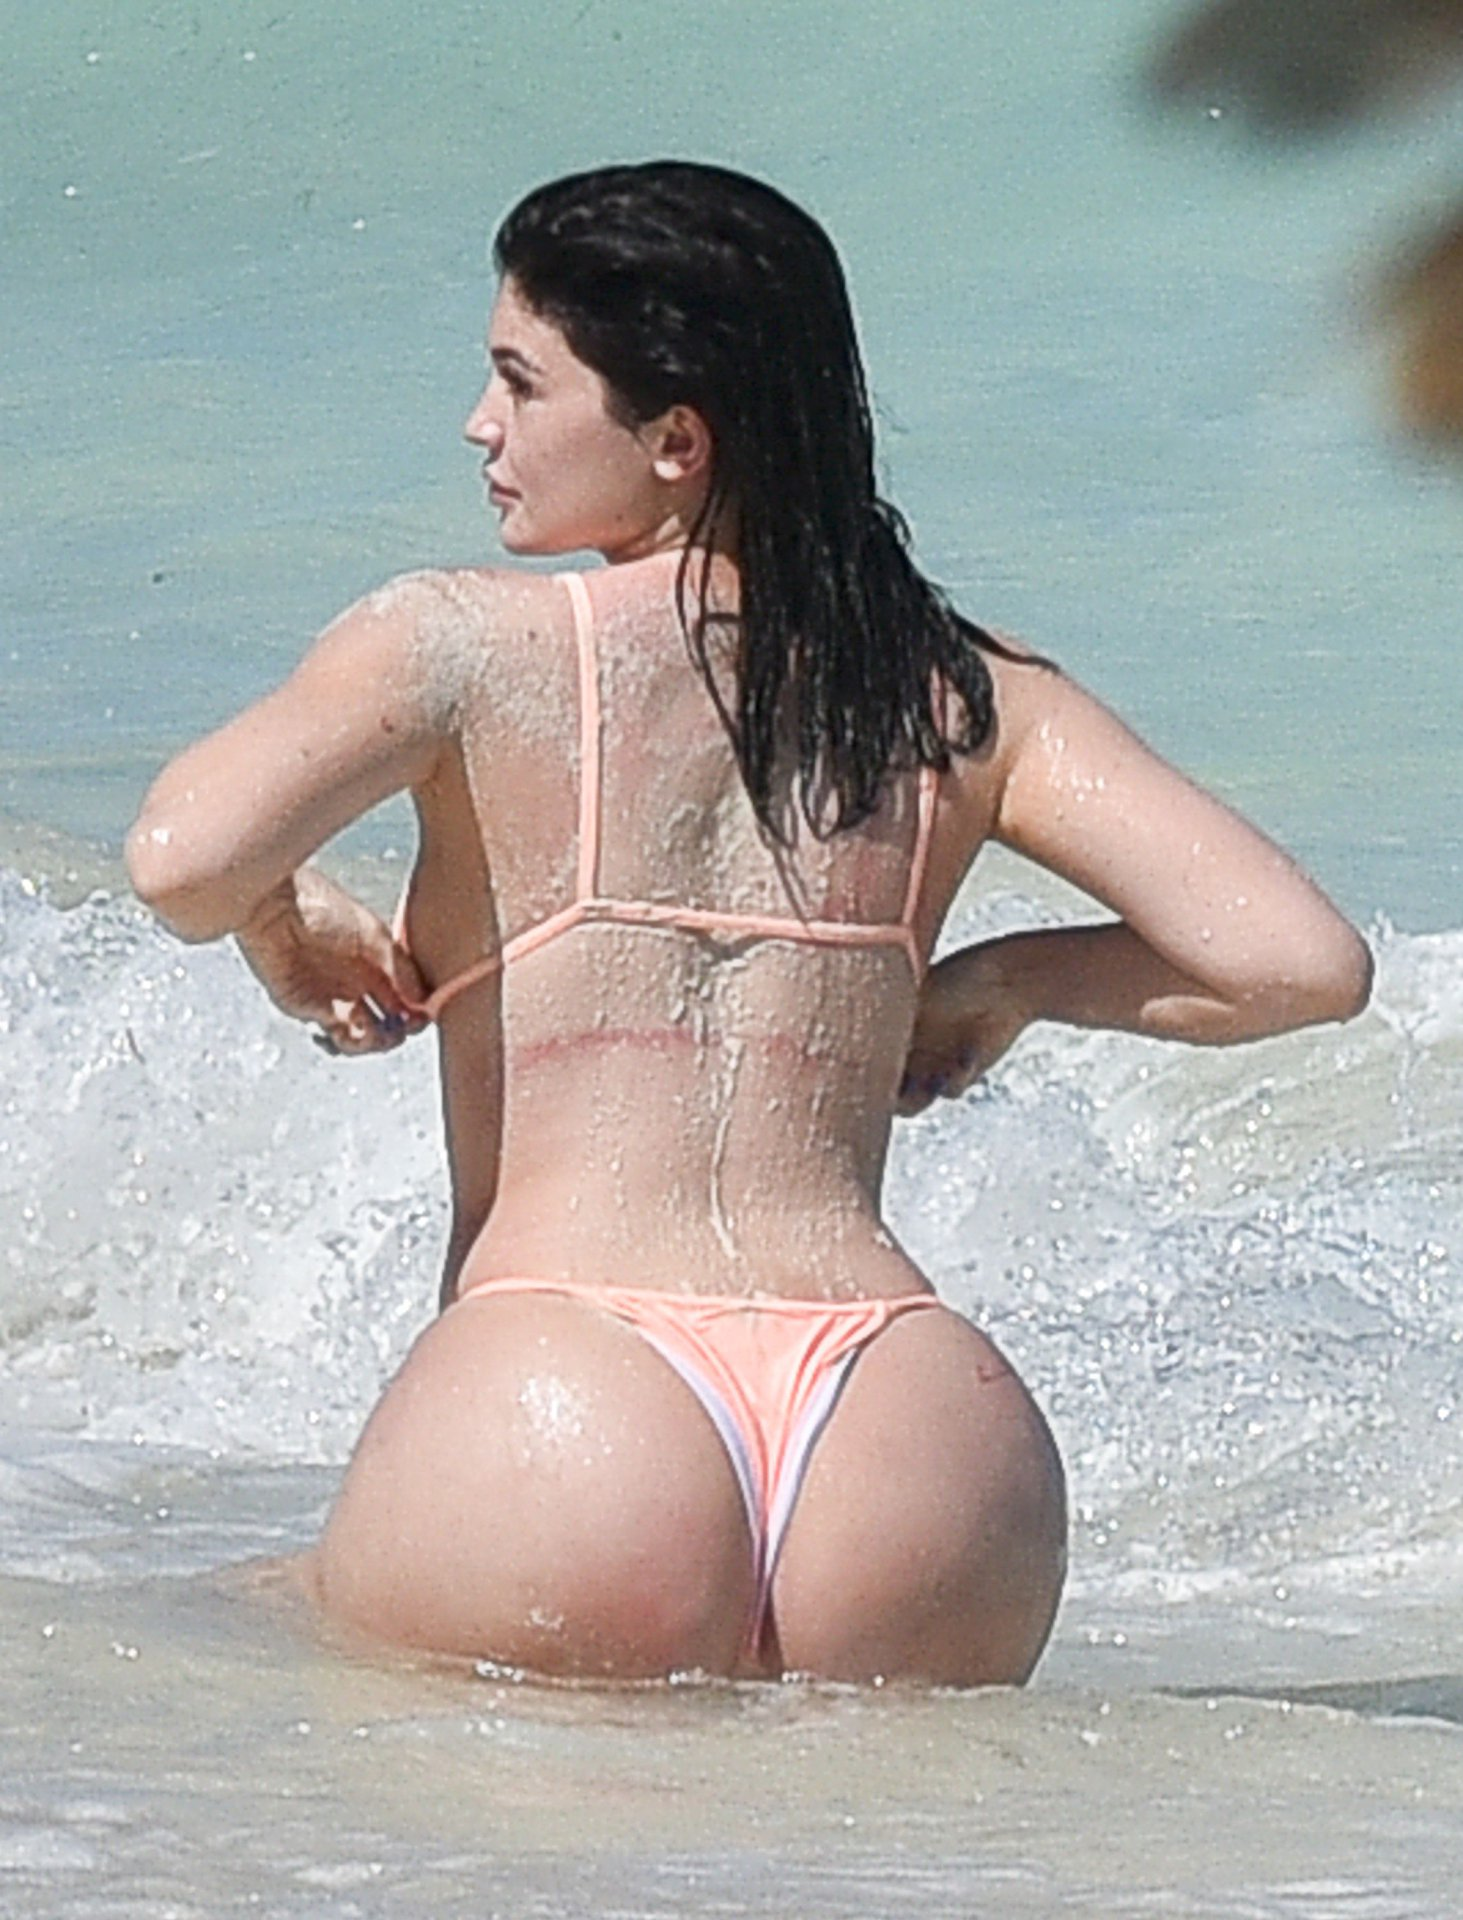 Kylie Jenner Butt Photos